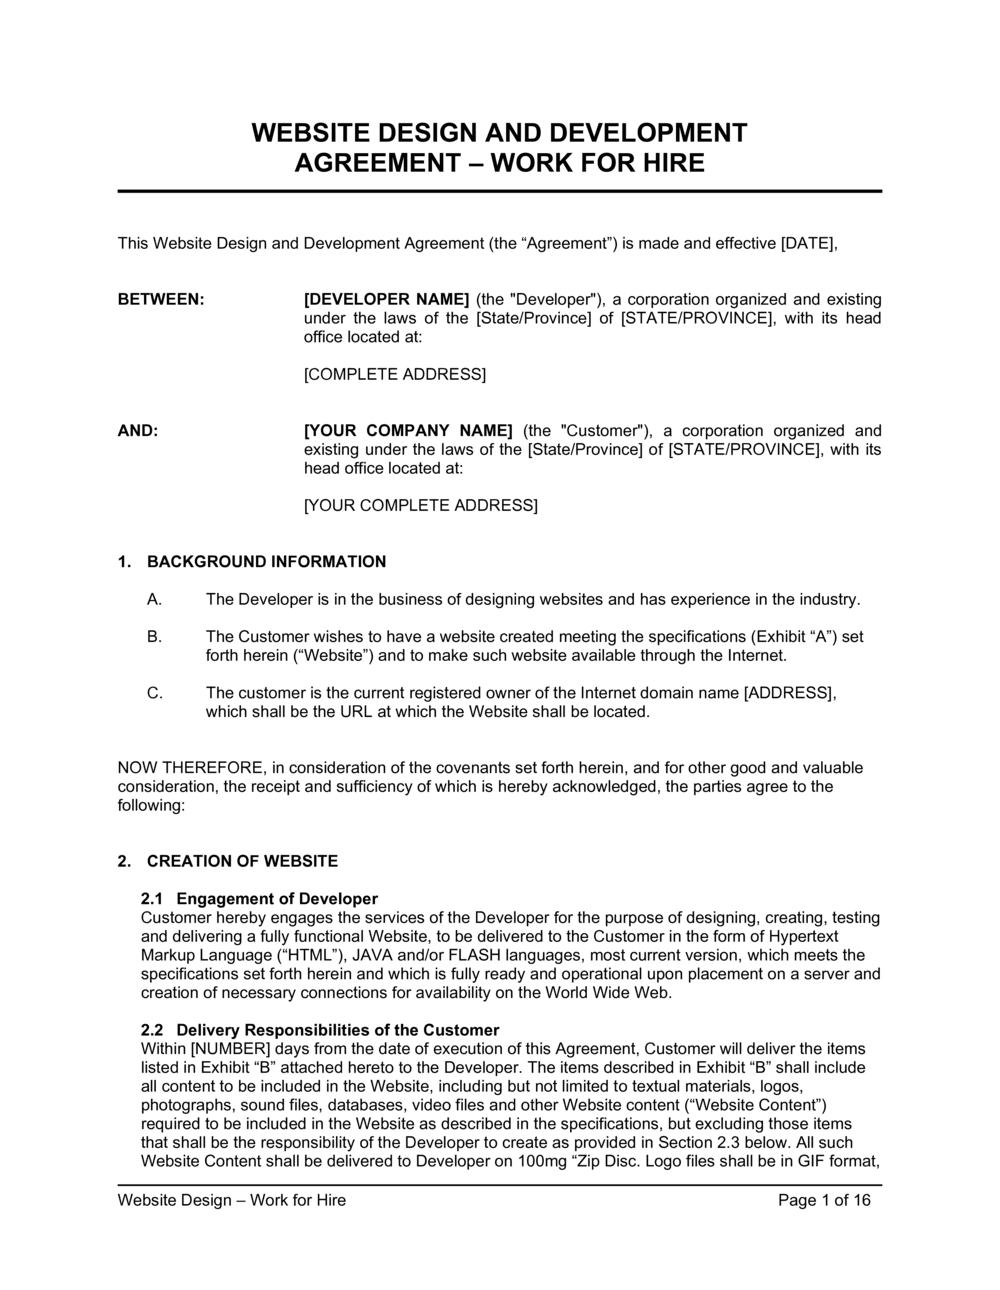 Business-in-a-Box's Website Design Agreement Template